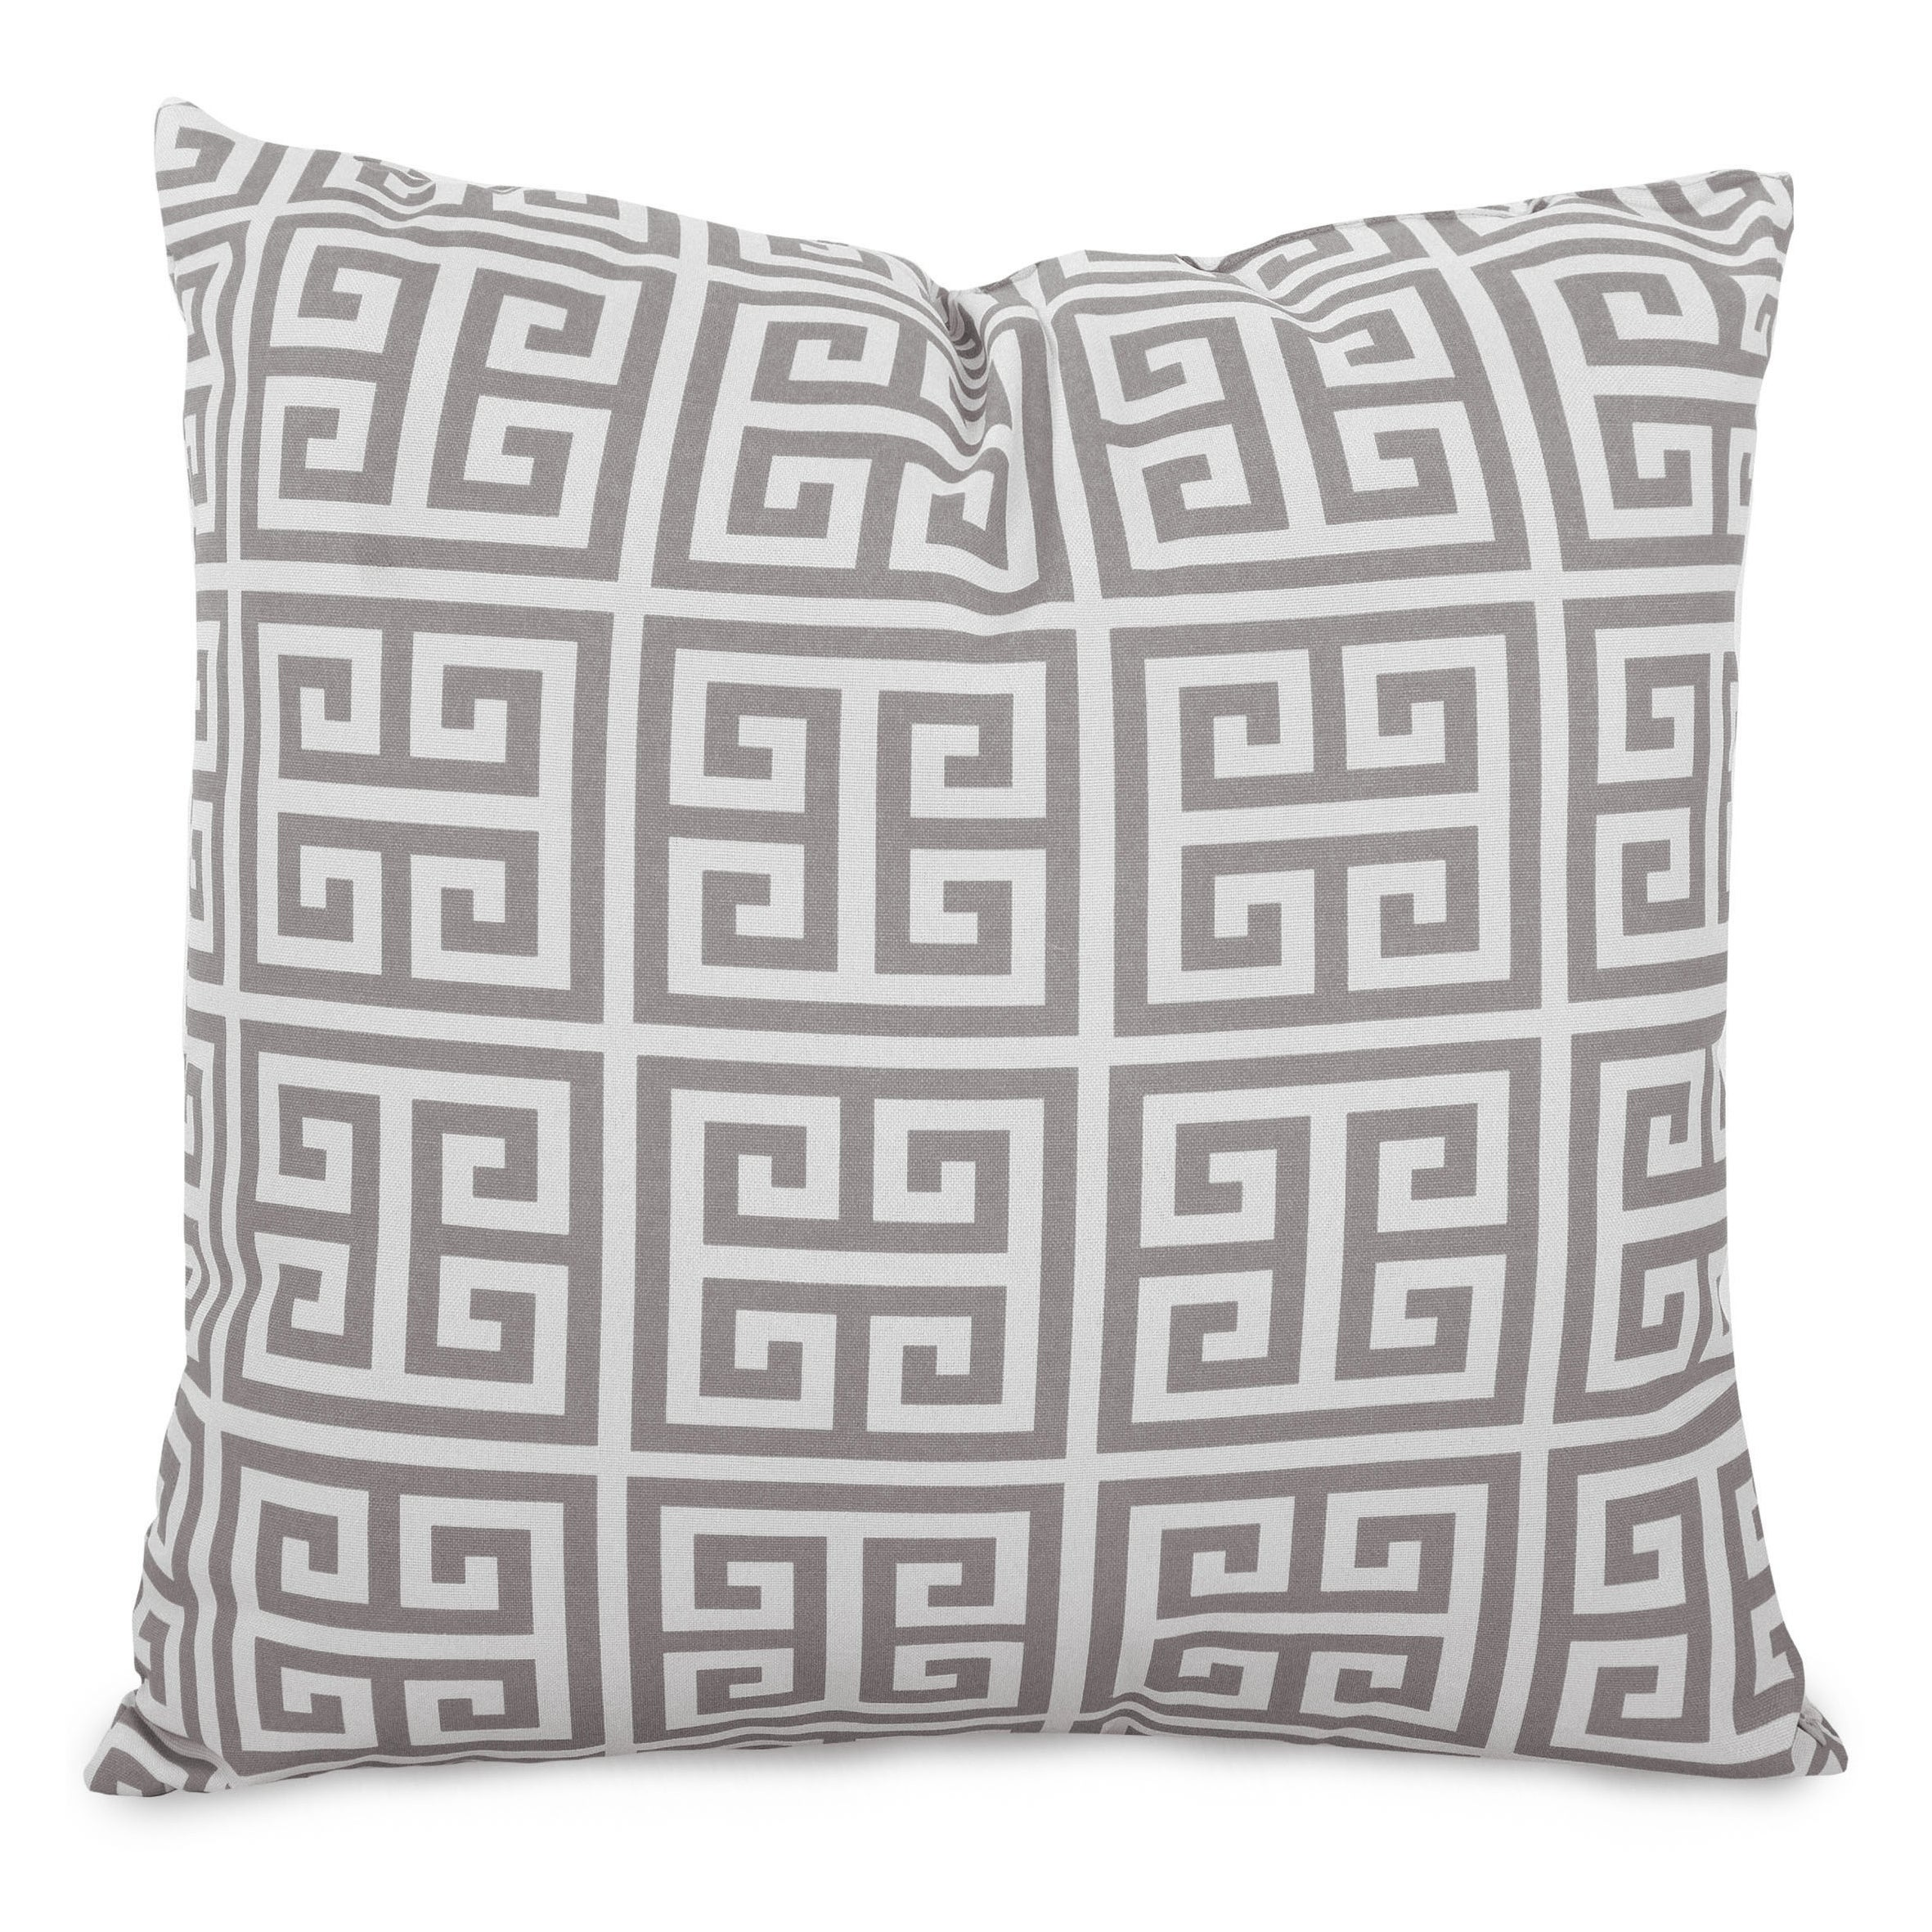 Majestic Home Goods Gray Towers Indoor Outdoor Large Pillow 20 L X 8 W X 20 H Overstock 22277184